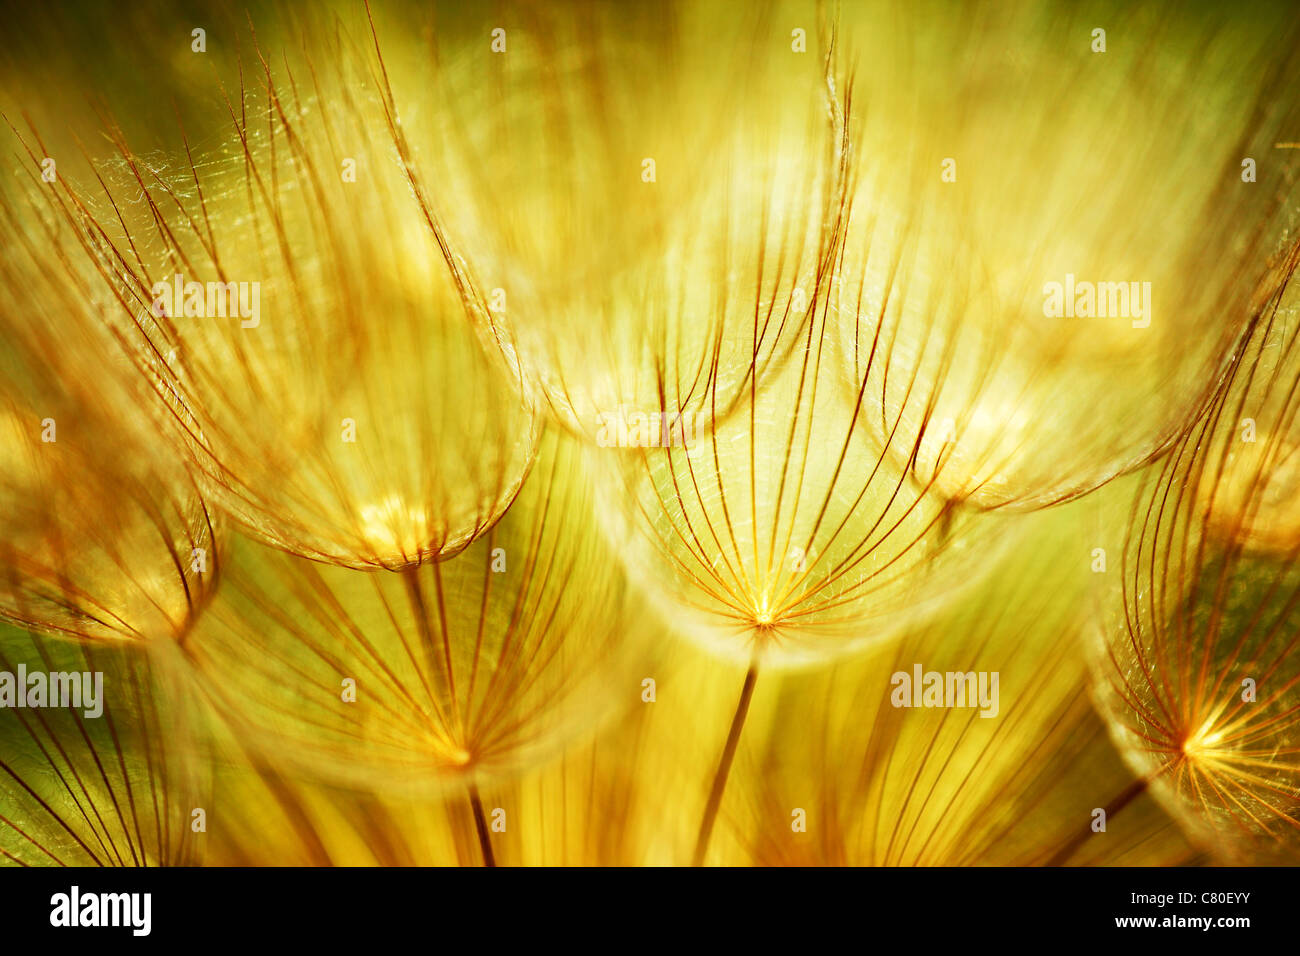 Soft dandelions flower, extreme closeup, abstract spring nature background - Stock Image